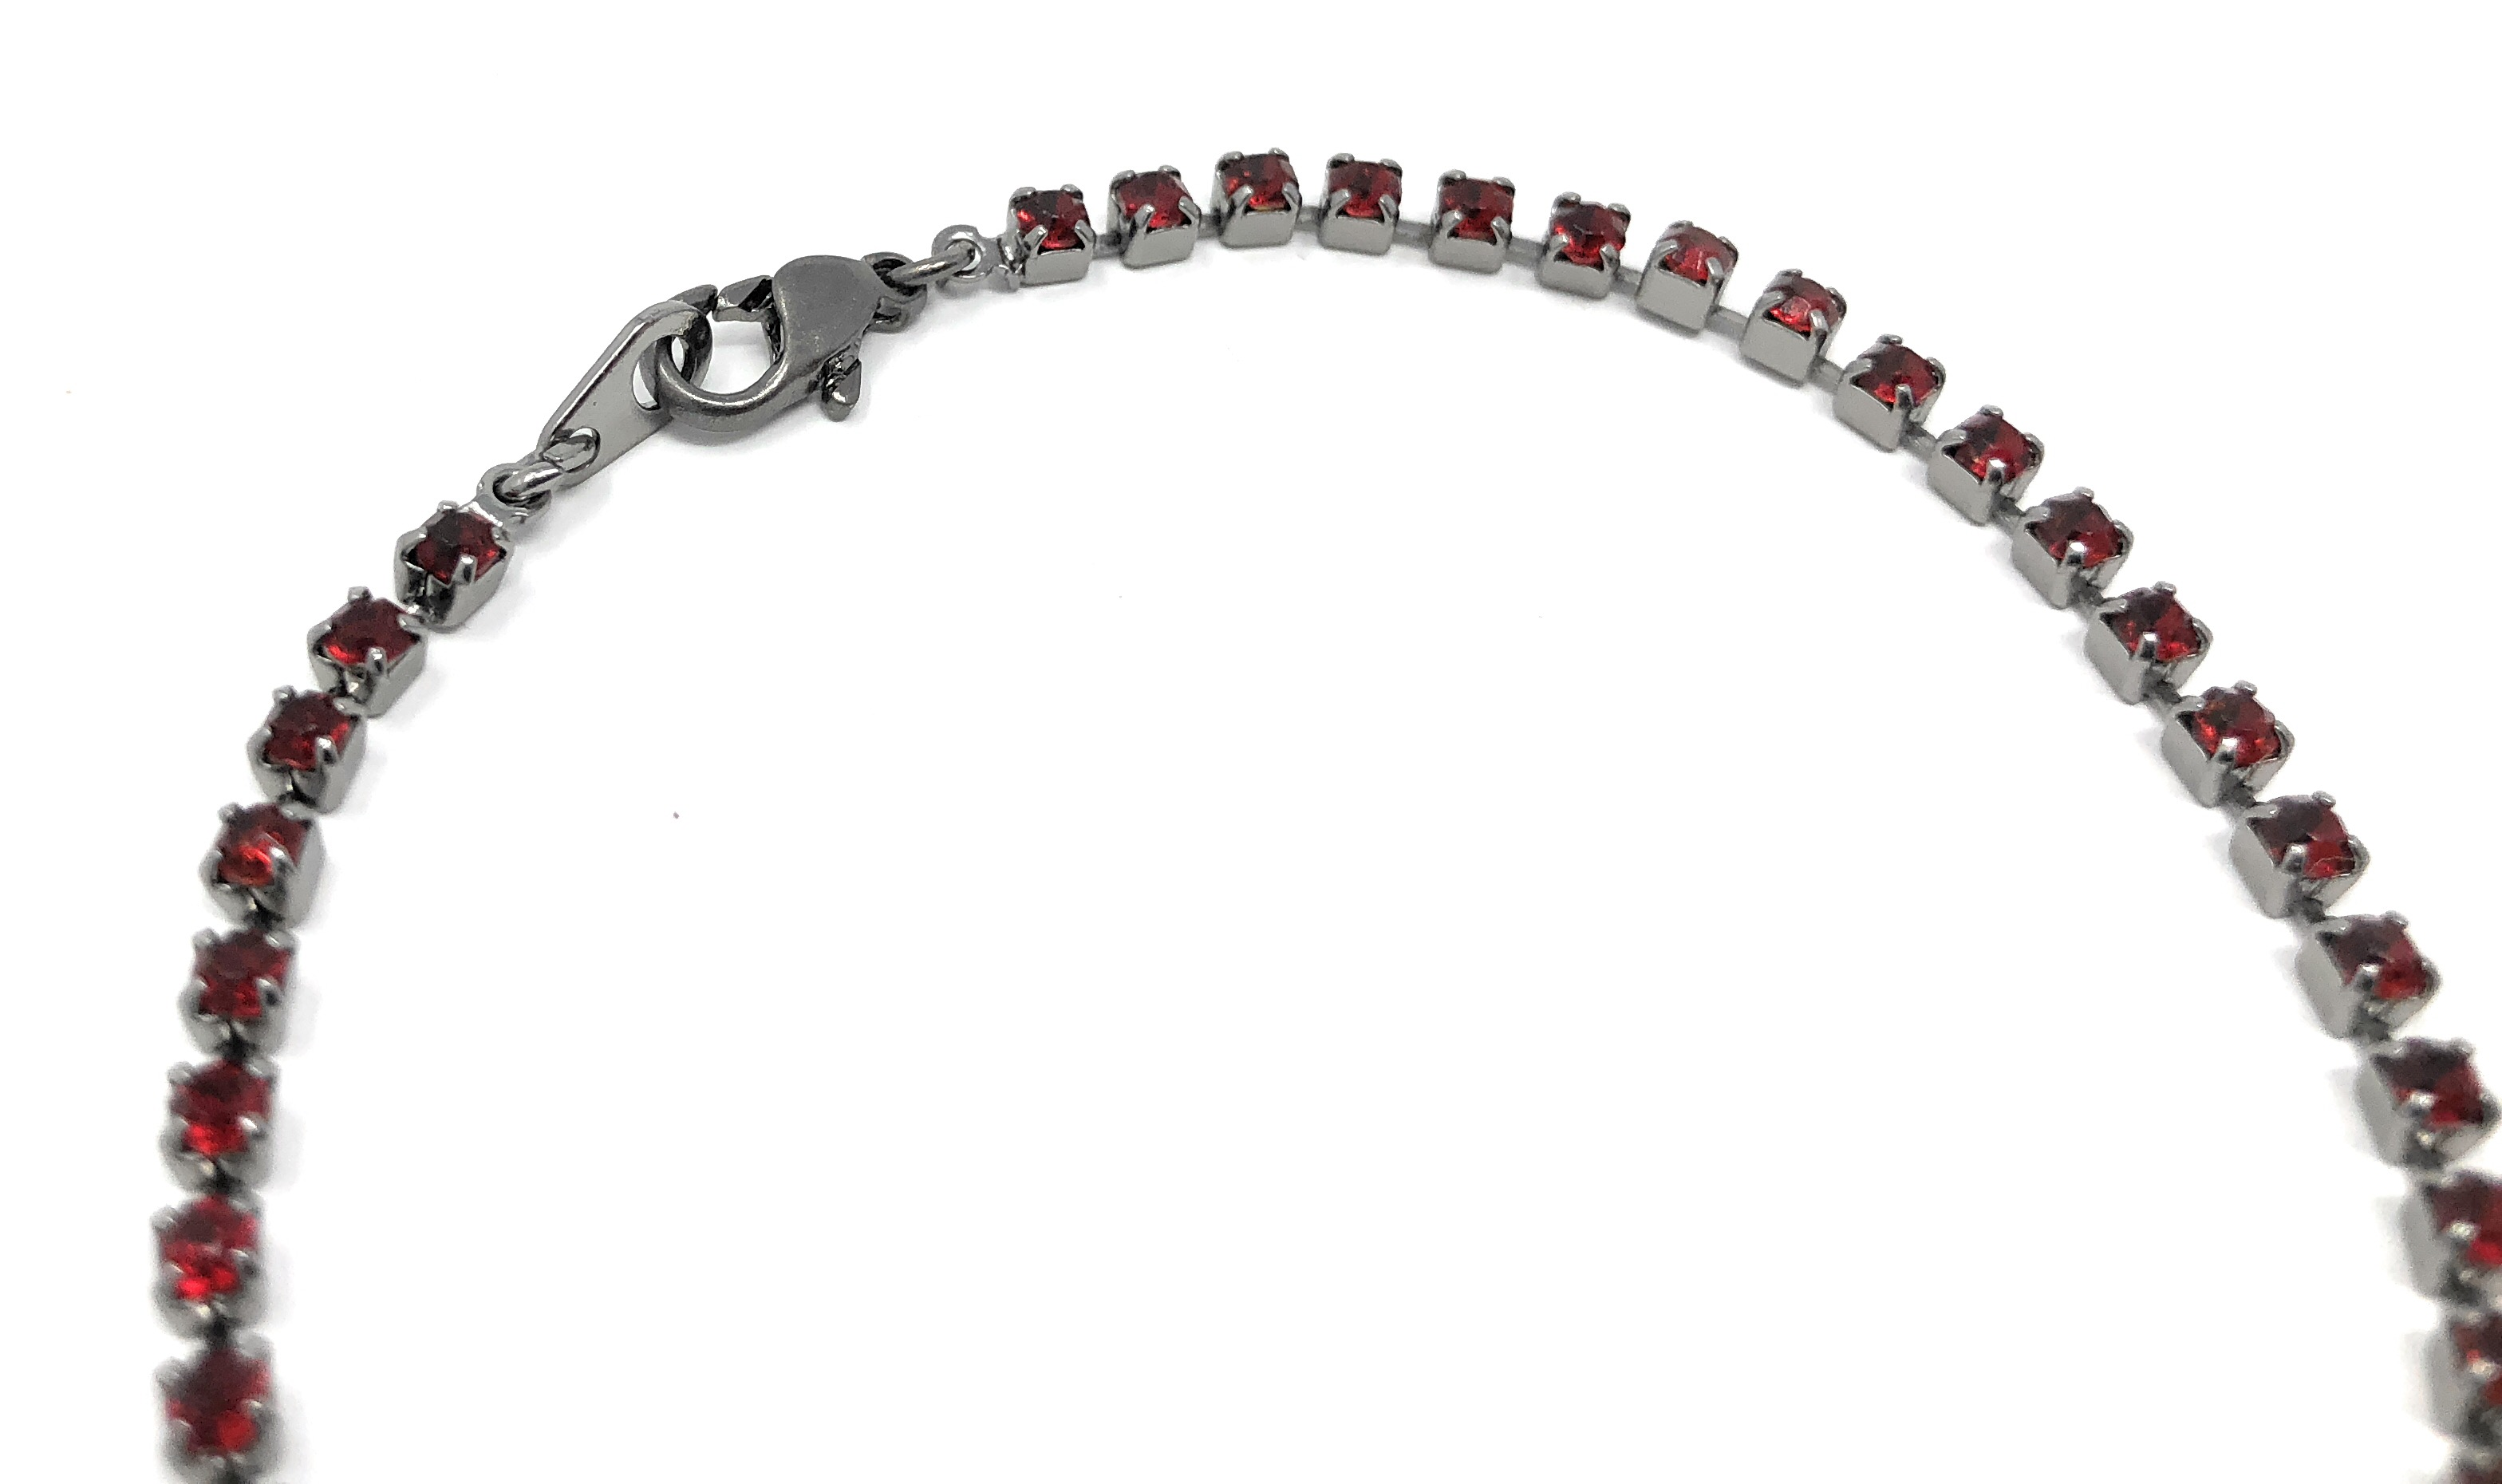 Bracelet with Rhinestones